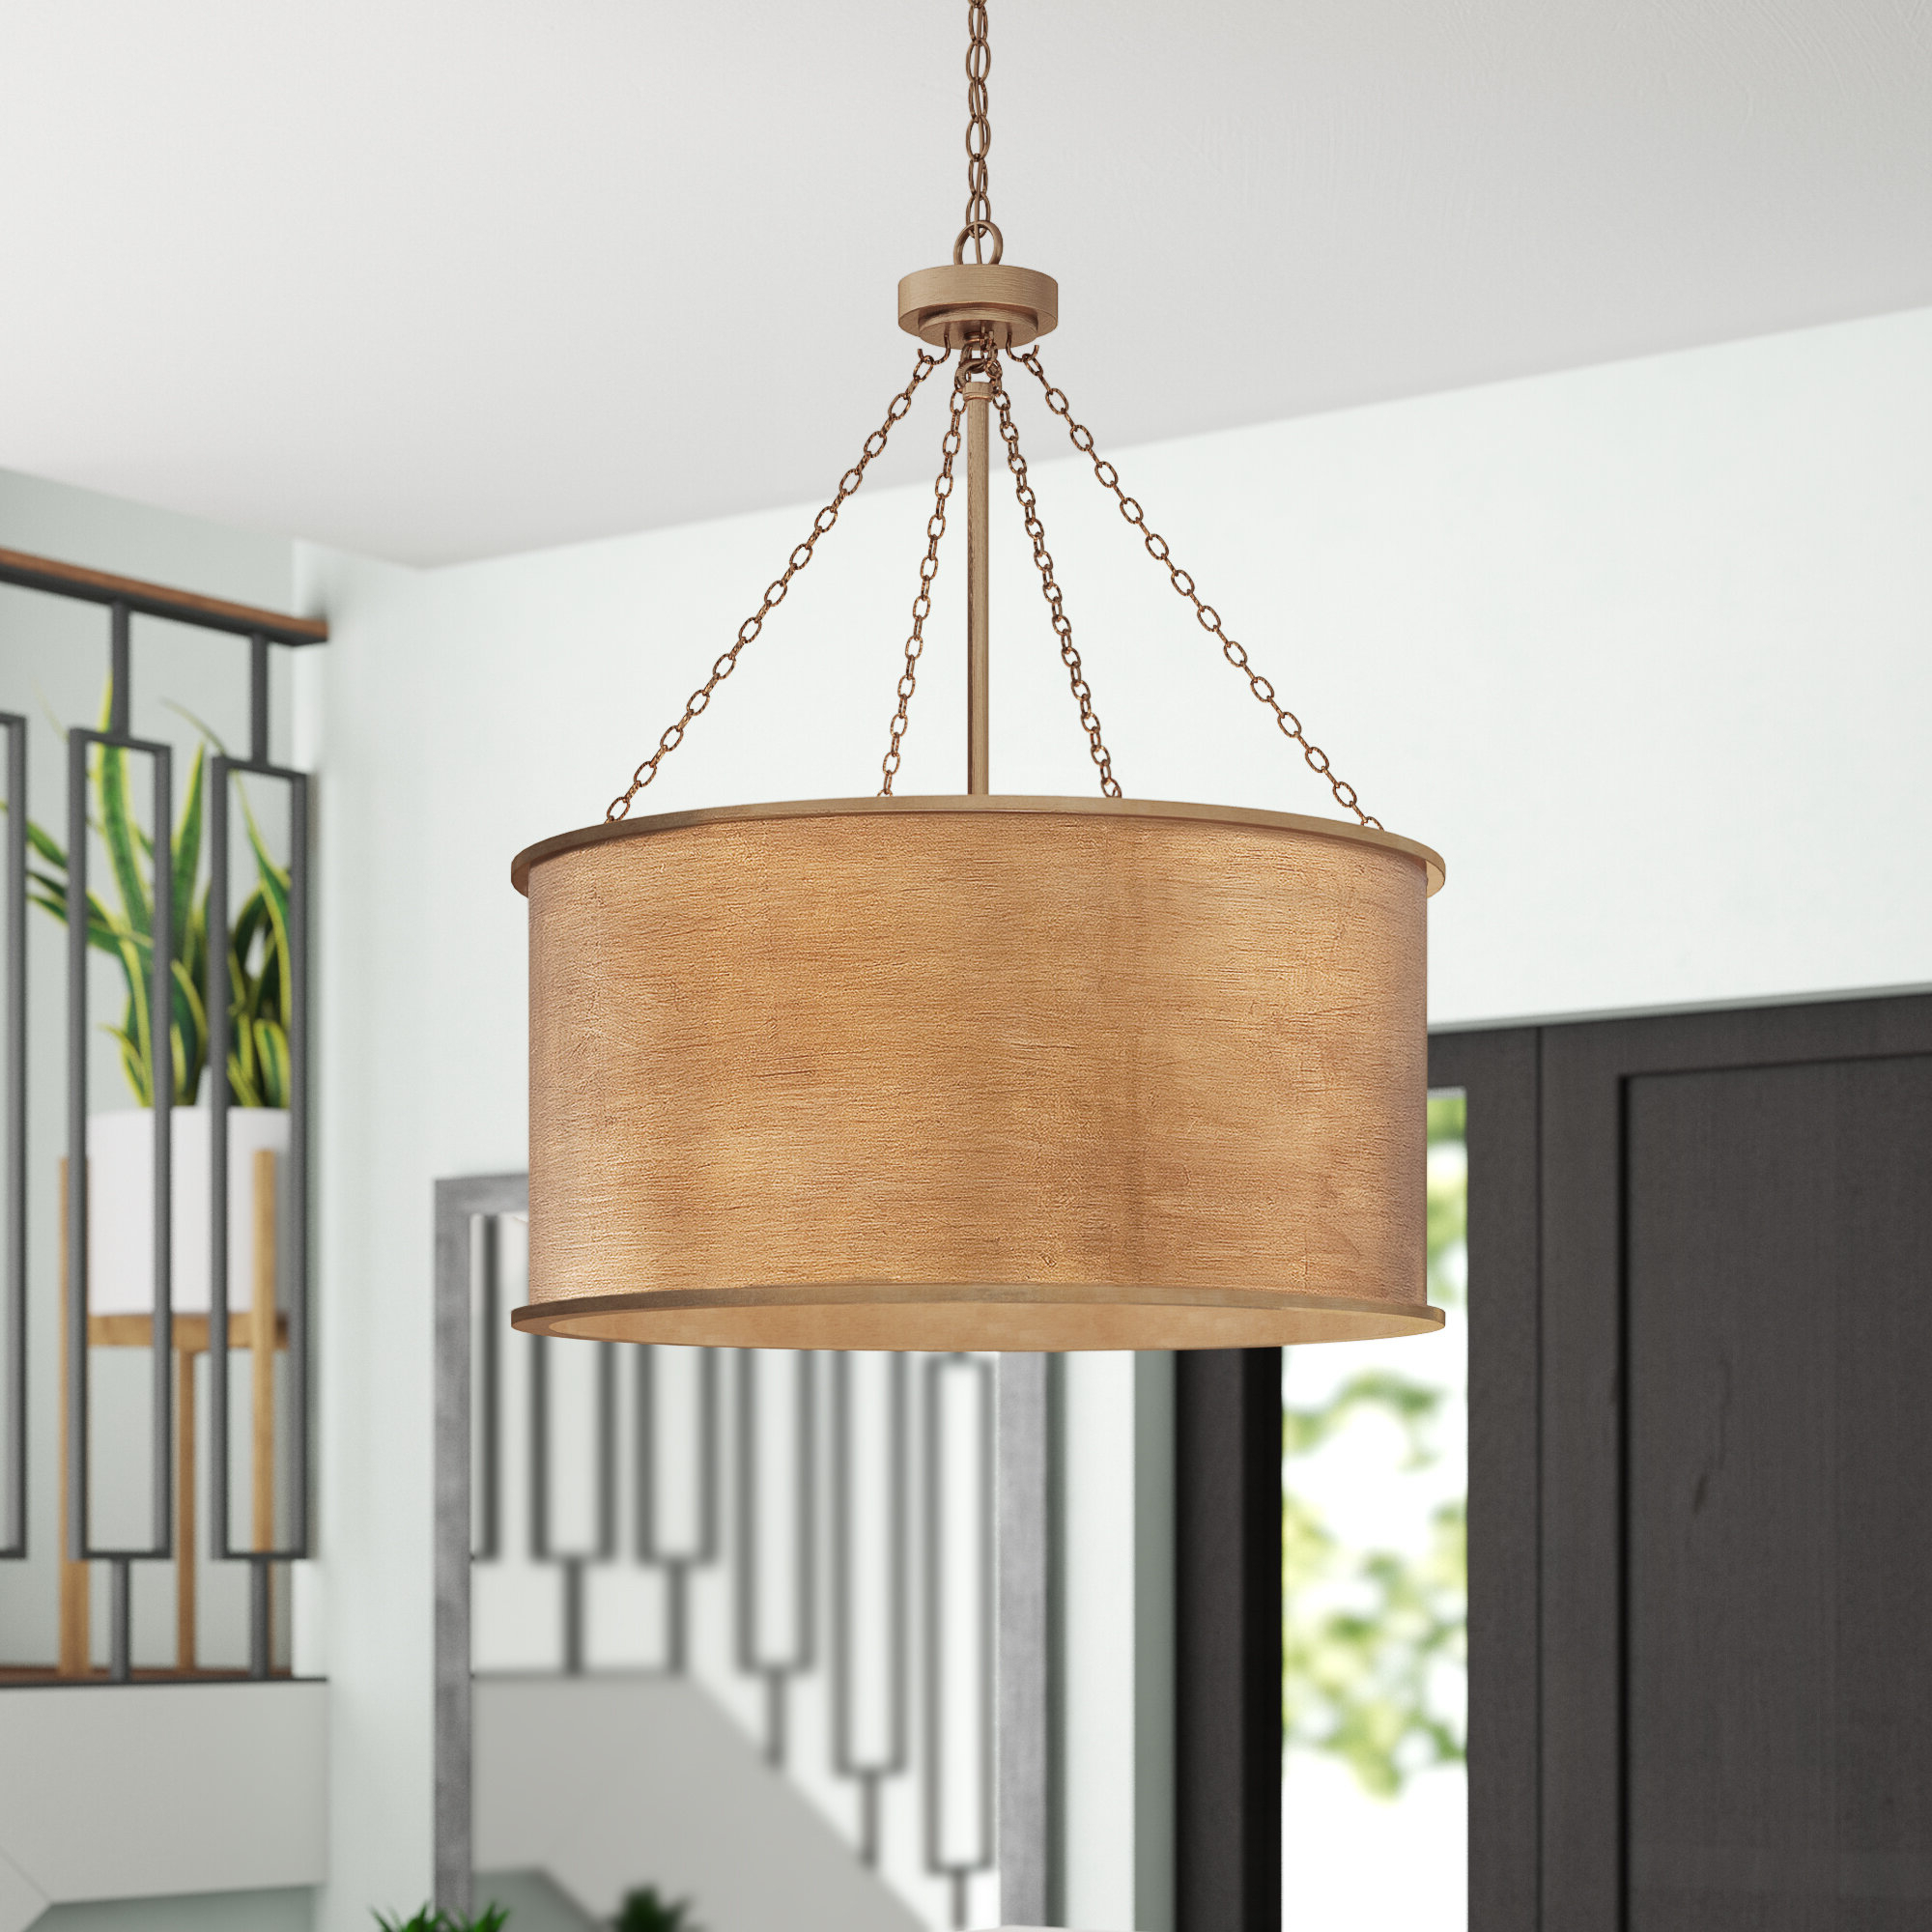 Alverez 4 Light Drum Chandeliers Throughout 2019 Cranston 4 Light Drum Chandelier (View 4 of 25)